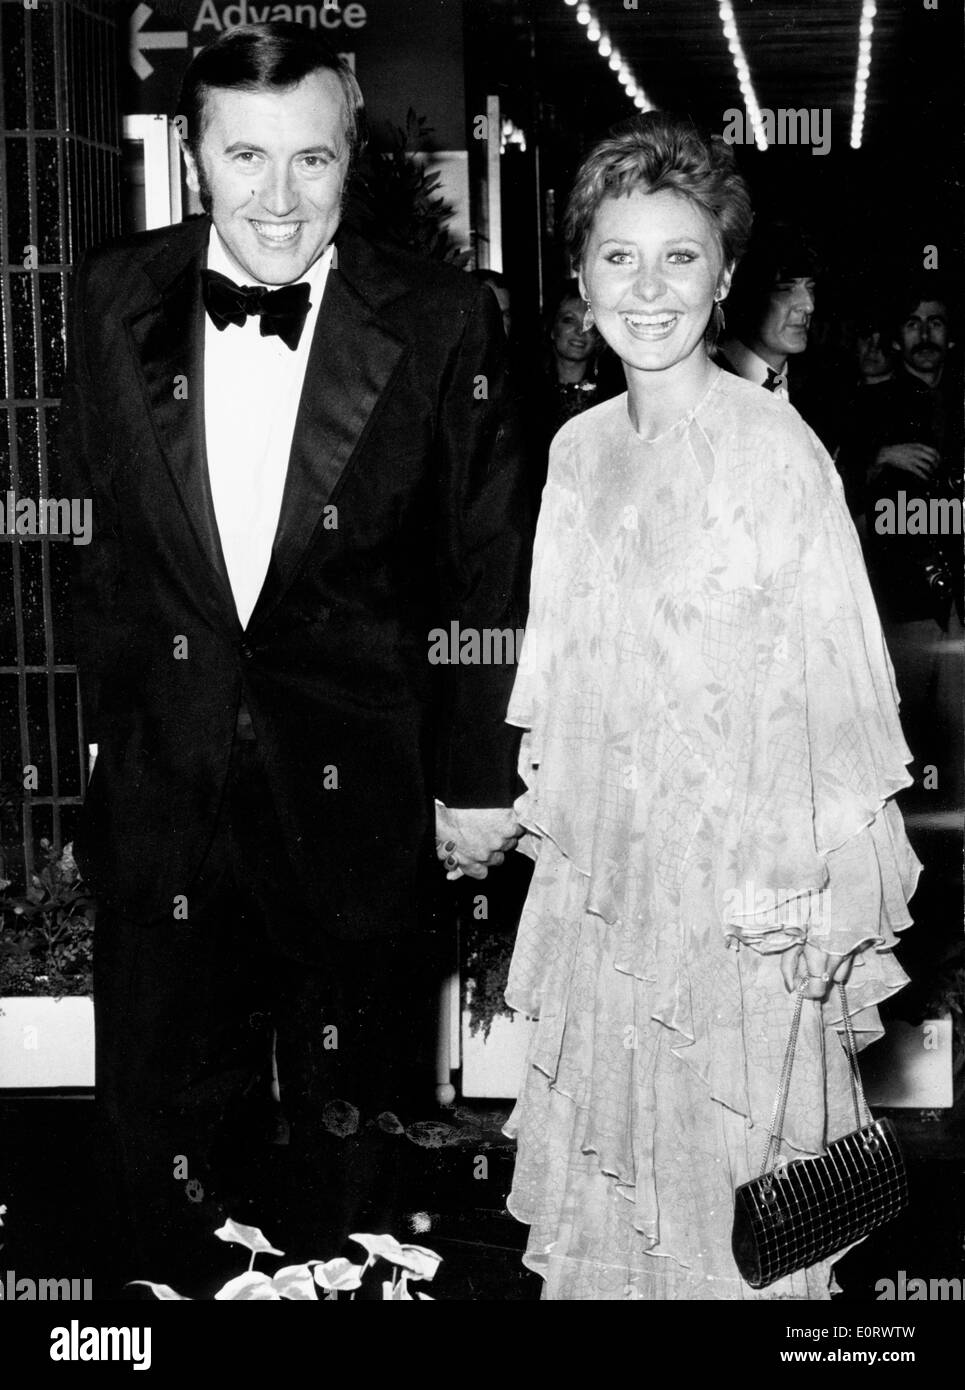 Journalist David Frost at an event with Lynne Frederick - Stock Image